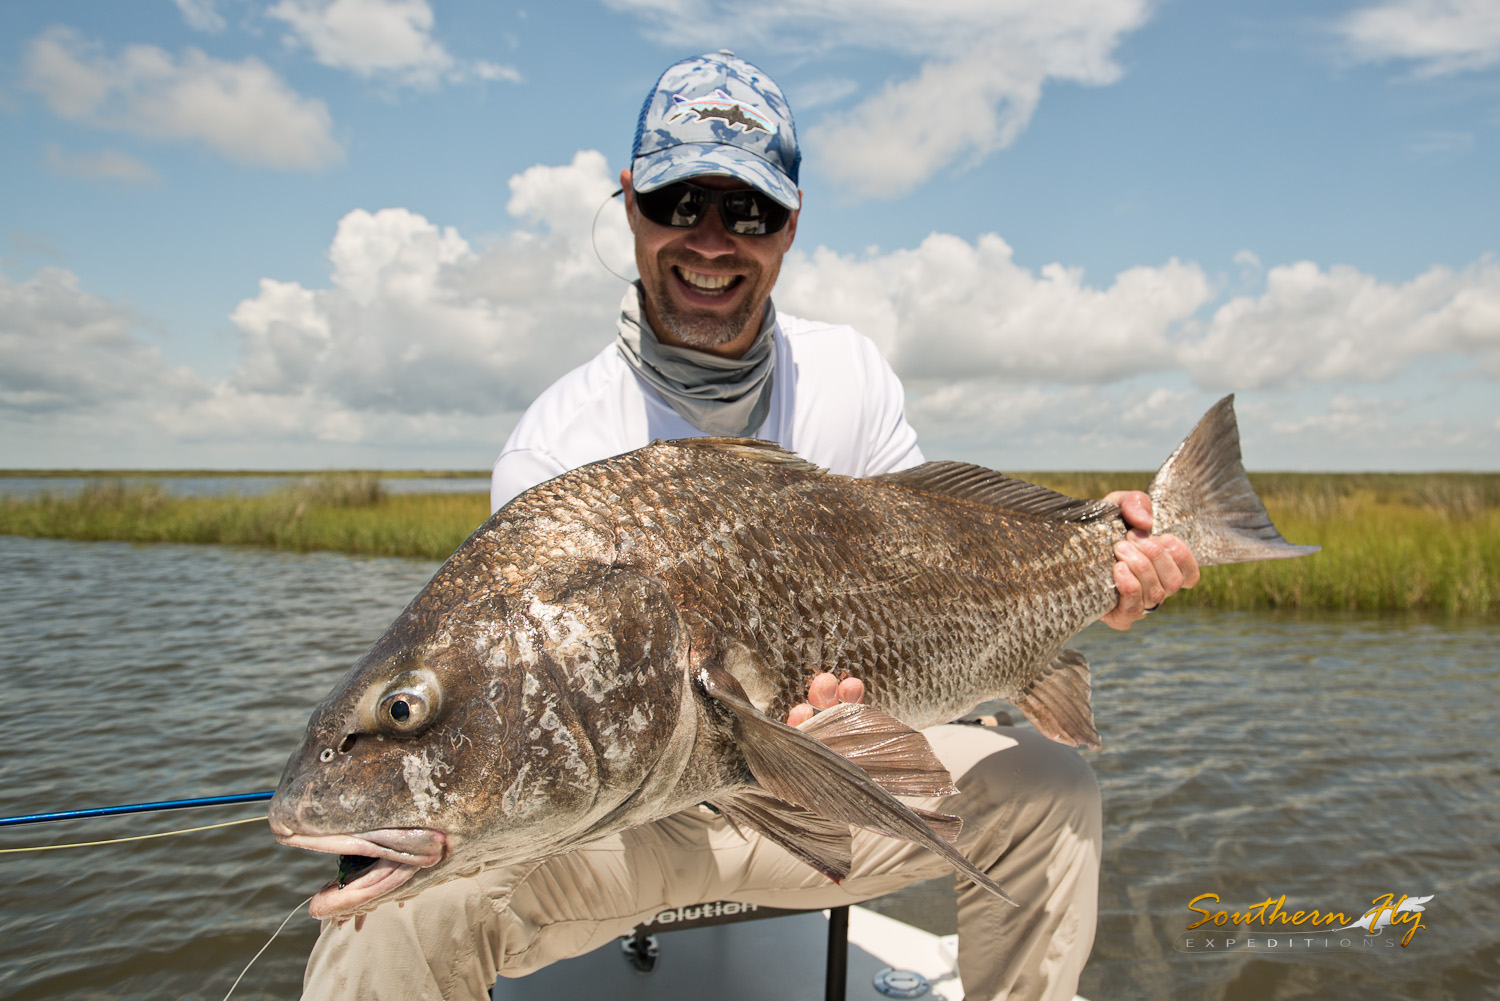 2019-06-29-07-01_SouthernFlyExpeditions_NewOrleans_DanWilcoxAndBrentByquist_Yellowdog-5.jpg